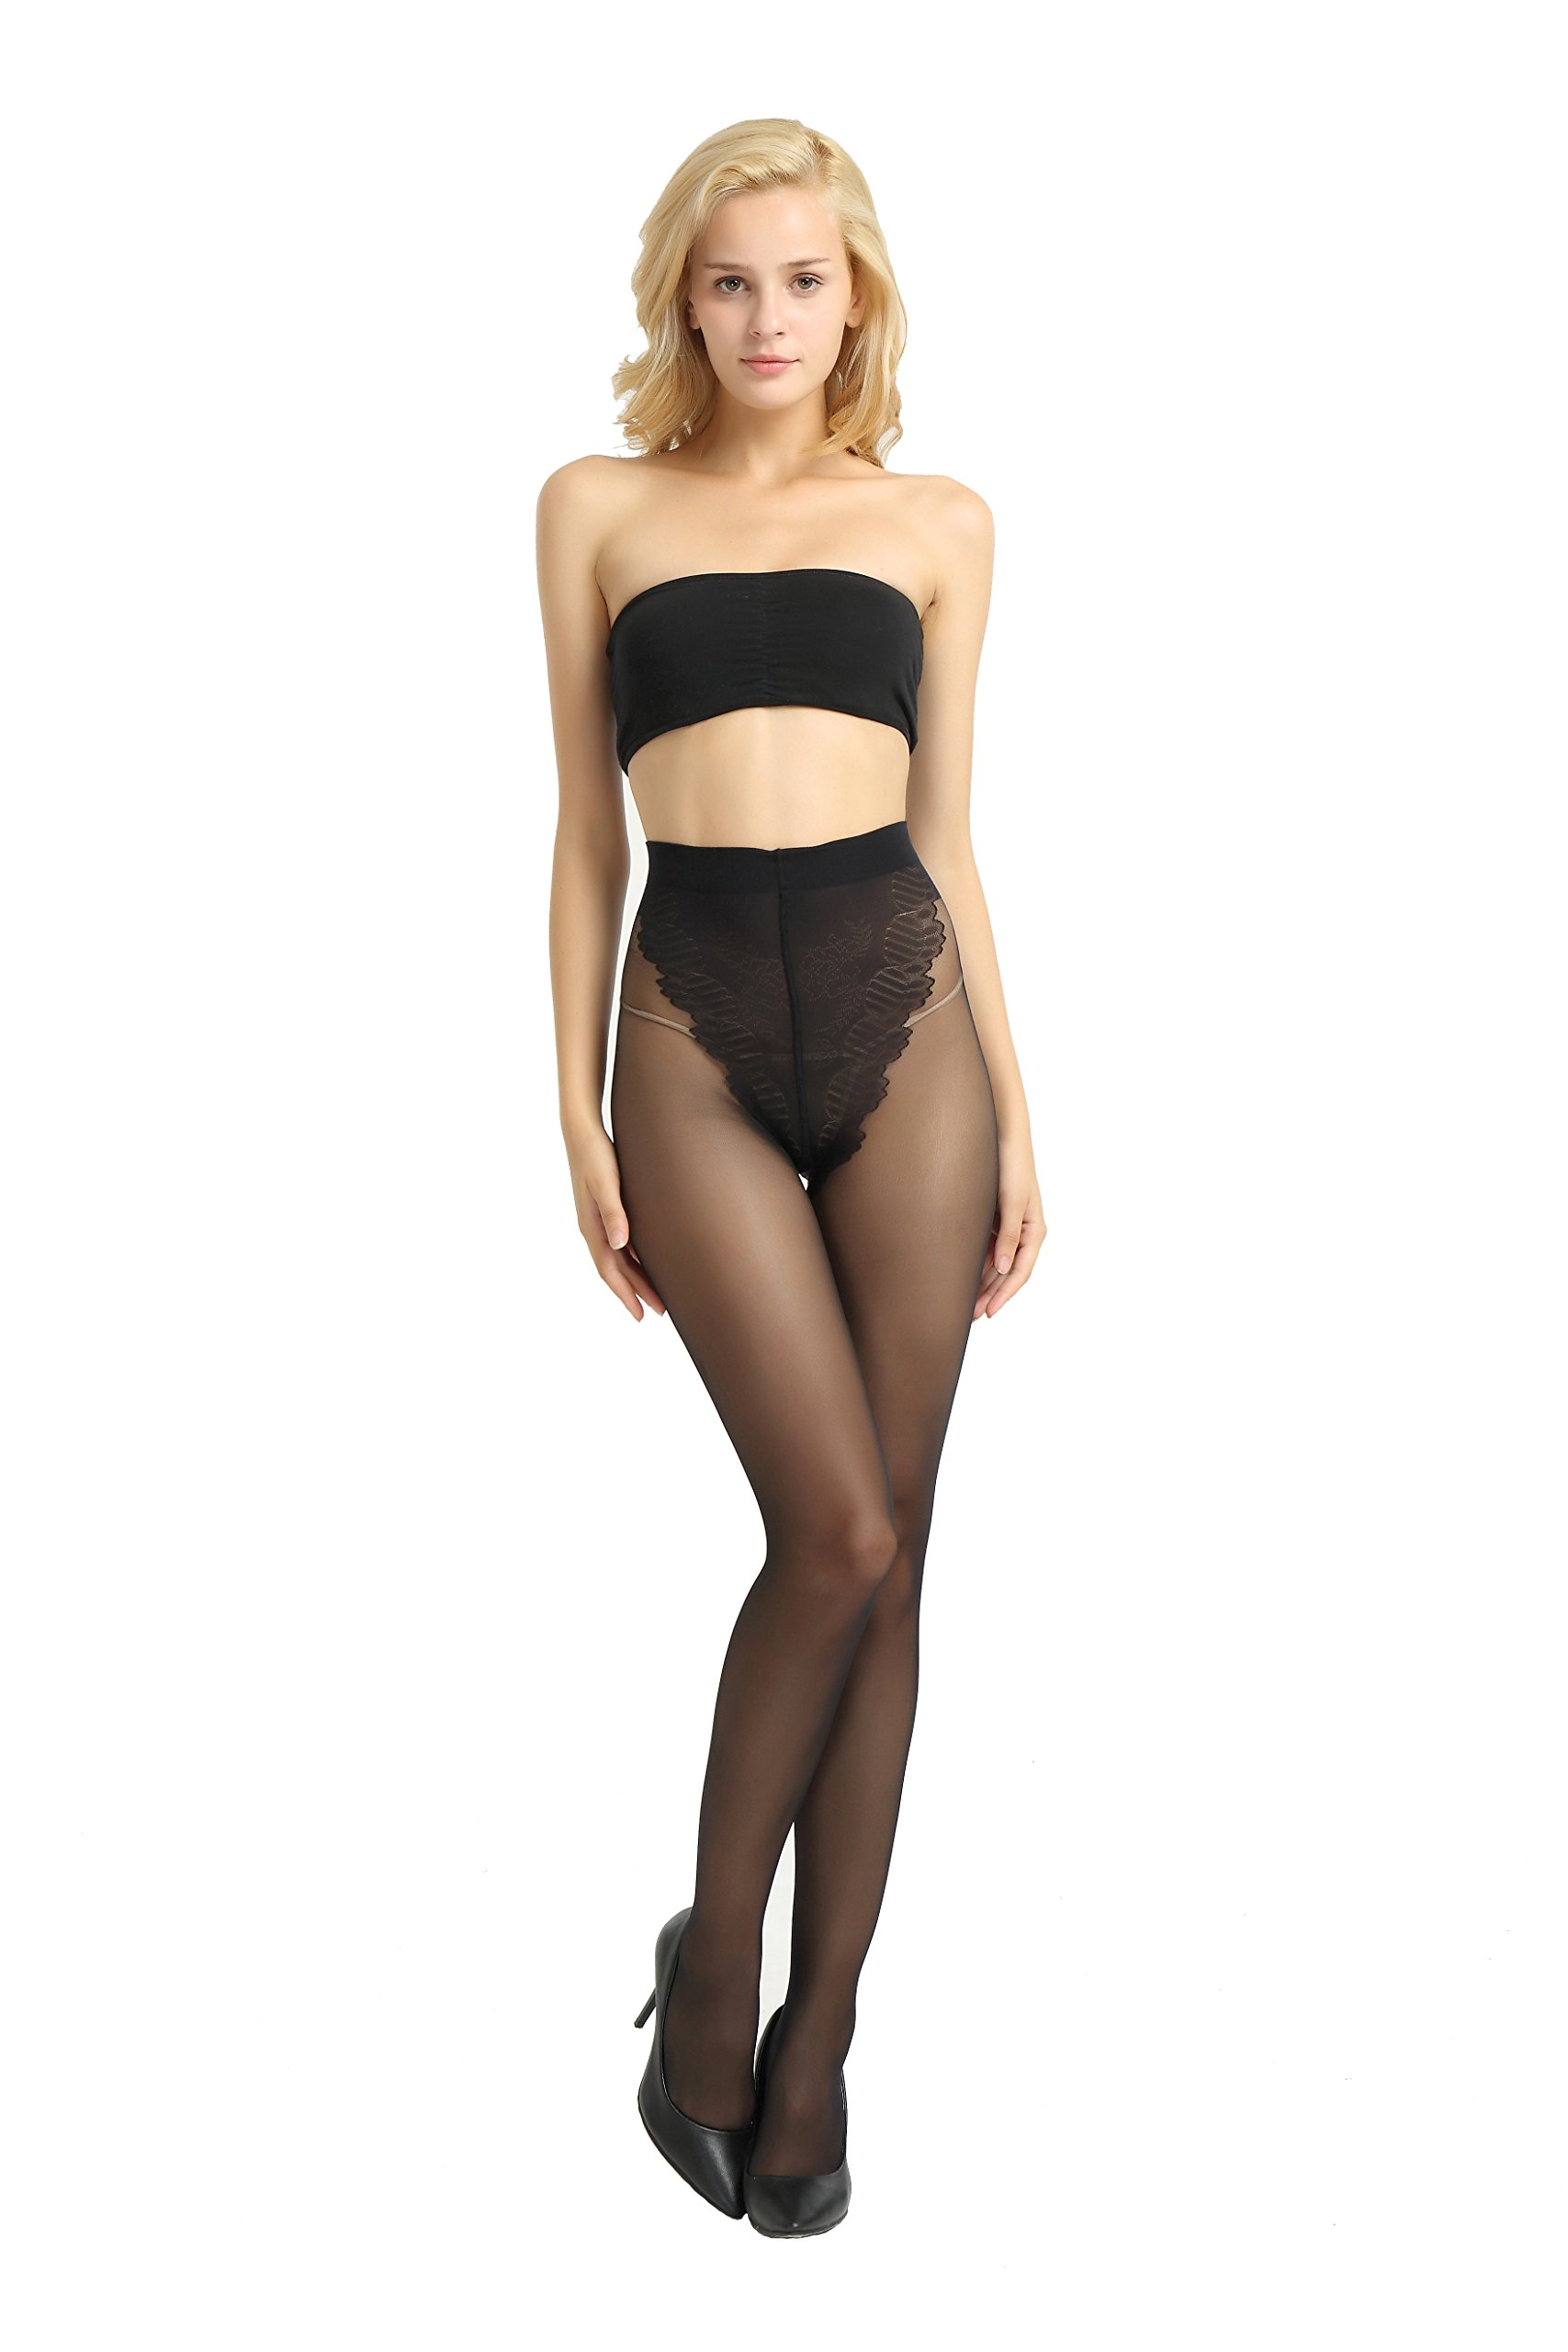 Alice & Belle Women's Super Thin Pantyhose, Soft Tights with Lace Control Top (Large, Black)